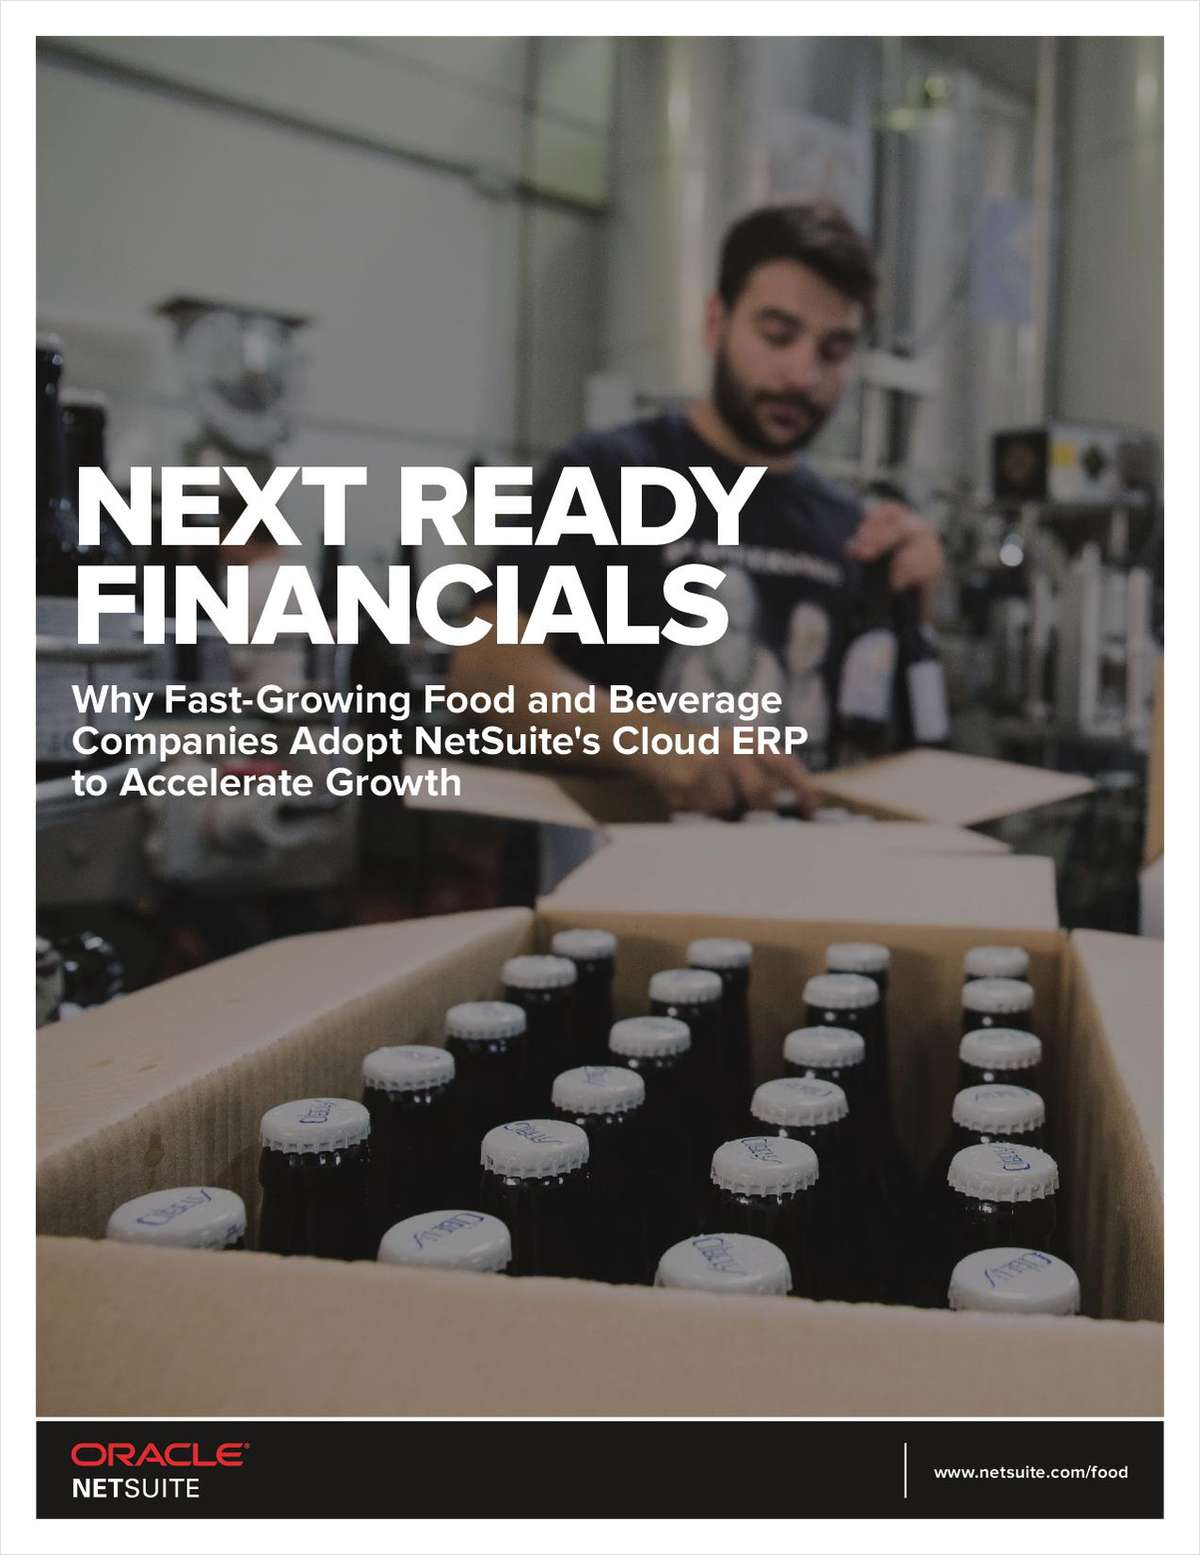 Next Ready Financials: Why Fast-Growing Food and Beverage Companies Adopt NetSuite's Cloud ERP to Accelerate Growth